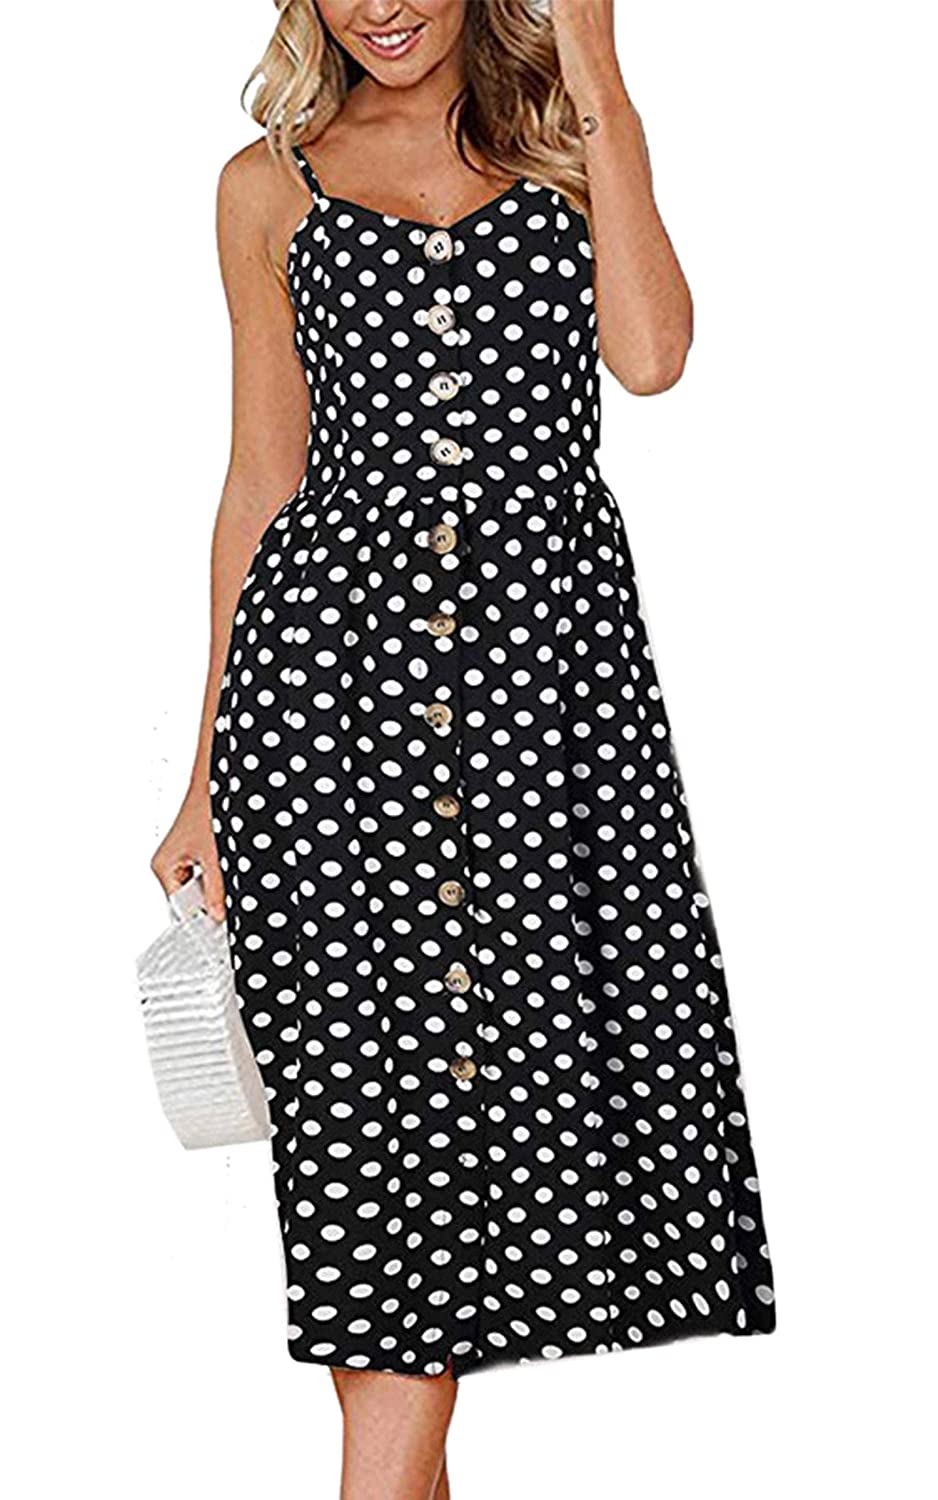 8049af2e53f7 Angashion Women's Dresses-Summer Floral Bohemian Spaghetti Strap Button  Down Swing Midi Dress with Pockets at Amazon Women's Clothing store: